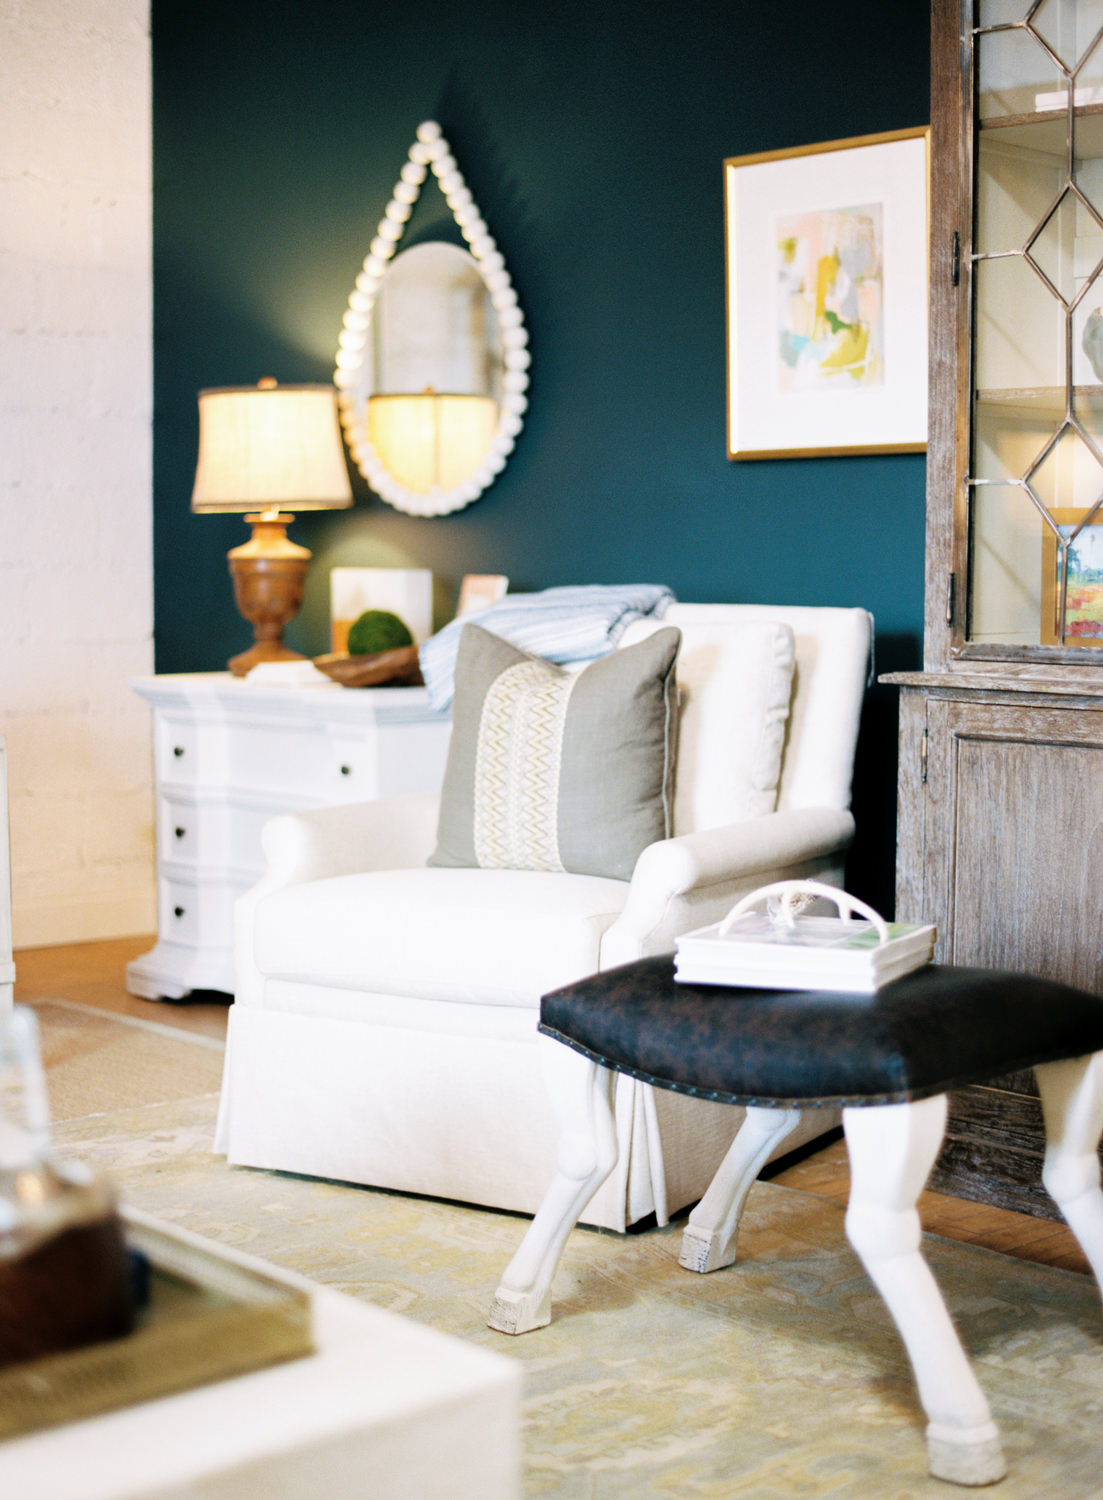 cottrell_photography_interiors-015